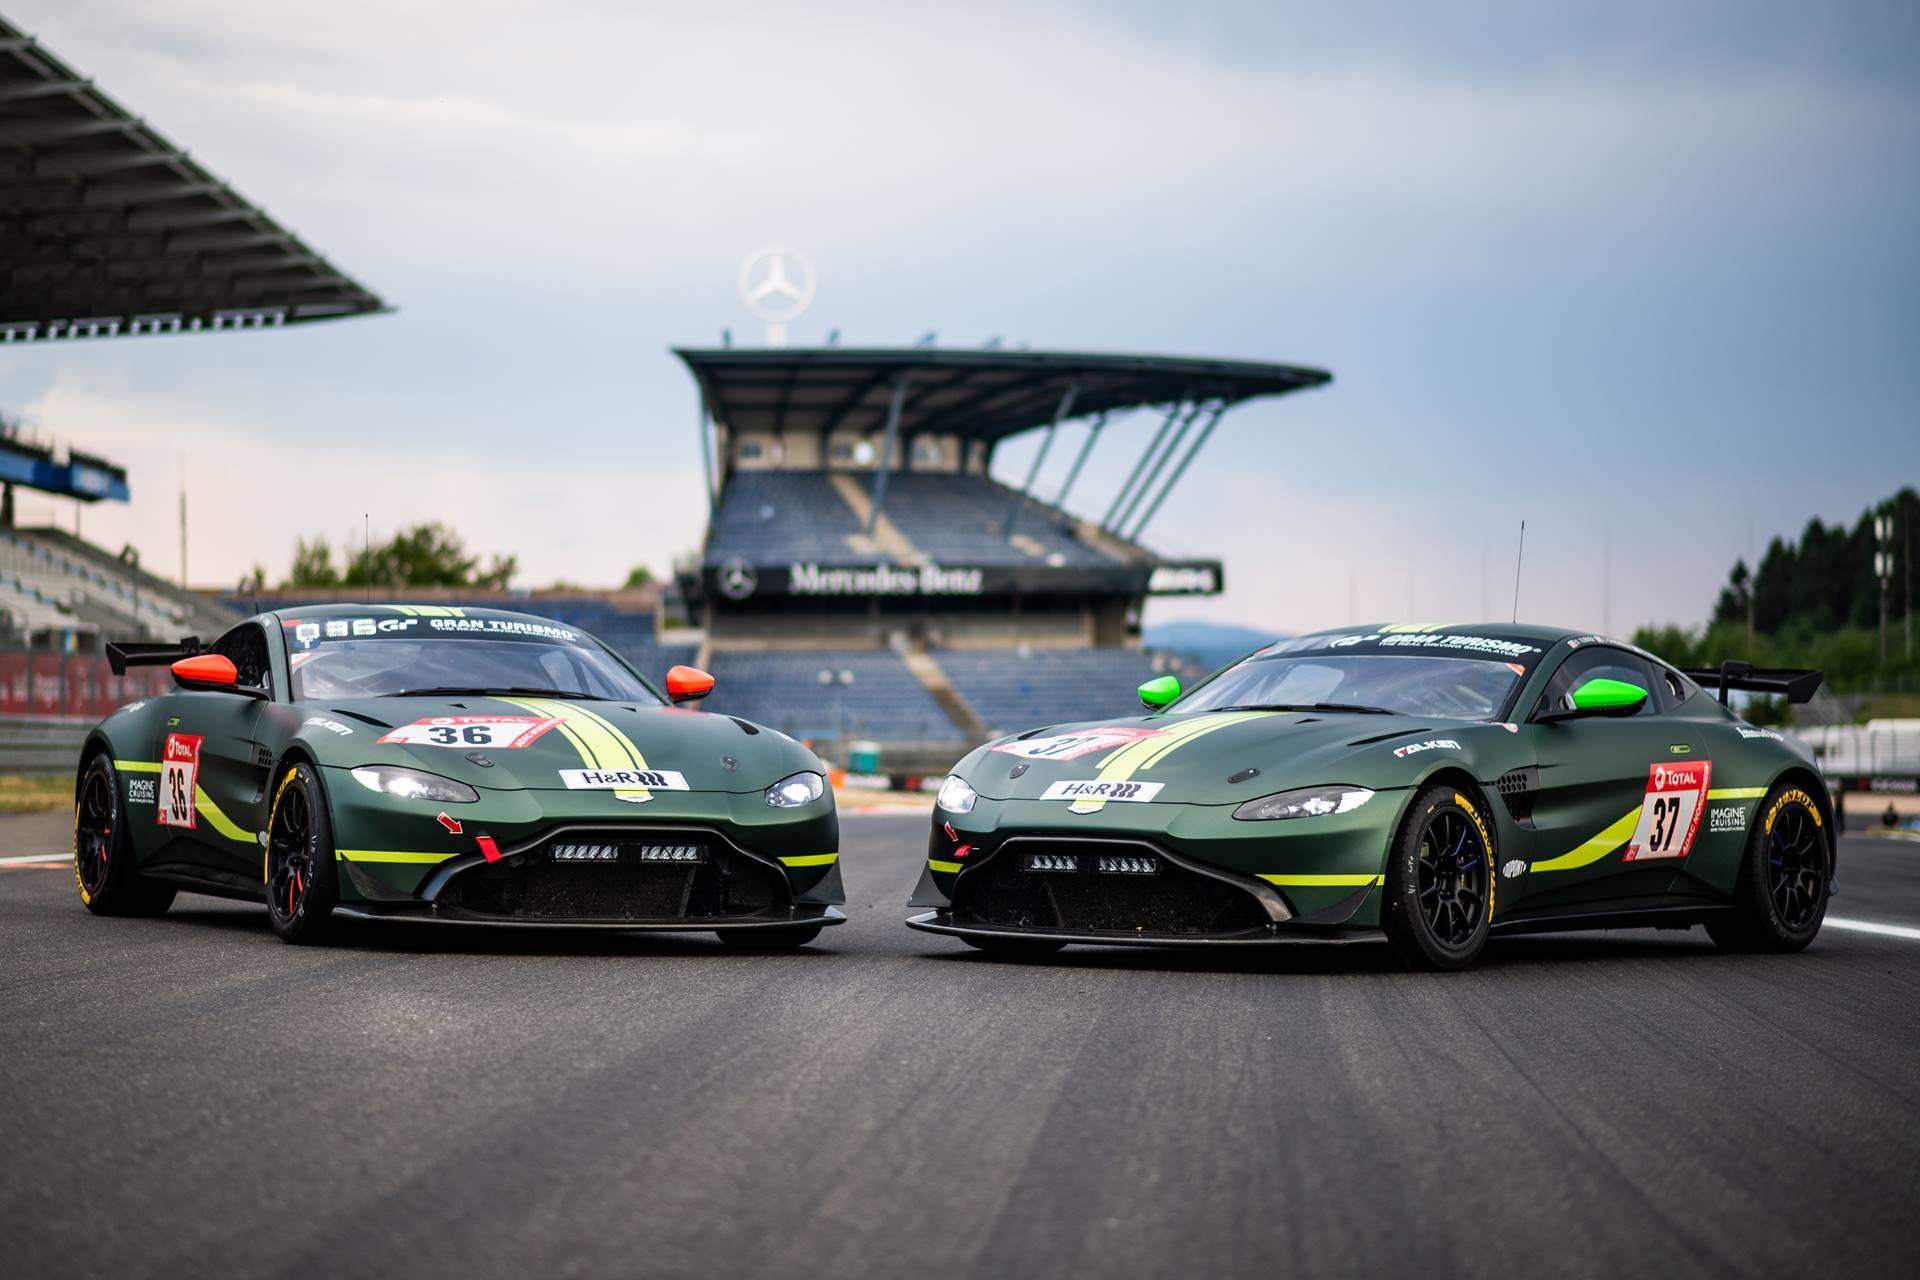 2019 Aston Martin Vantage Gt4 News And Information Research And Pricing